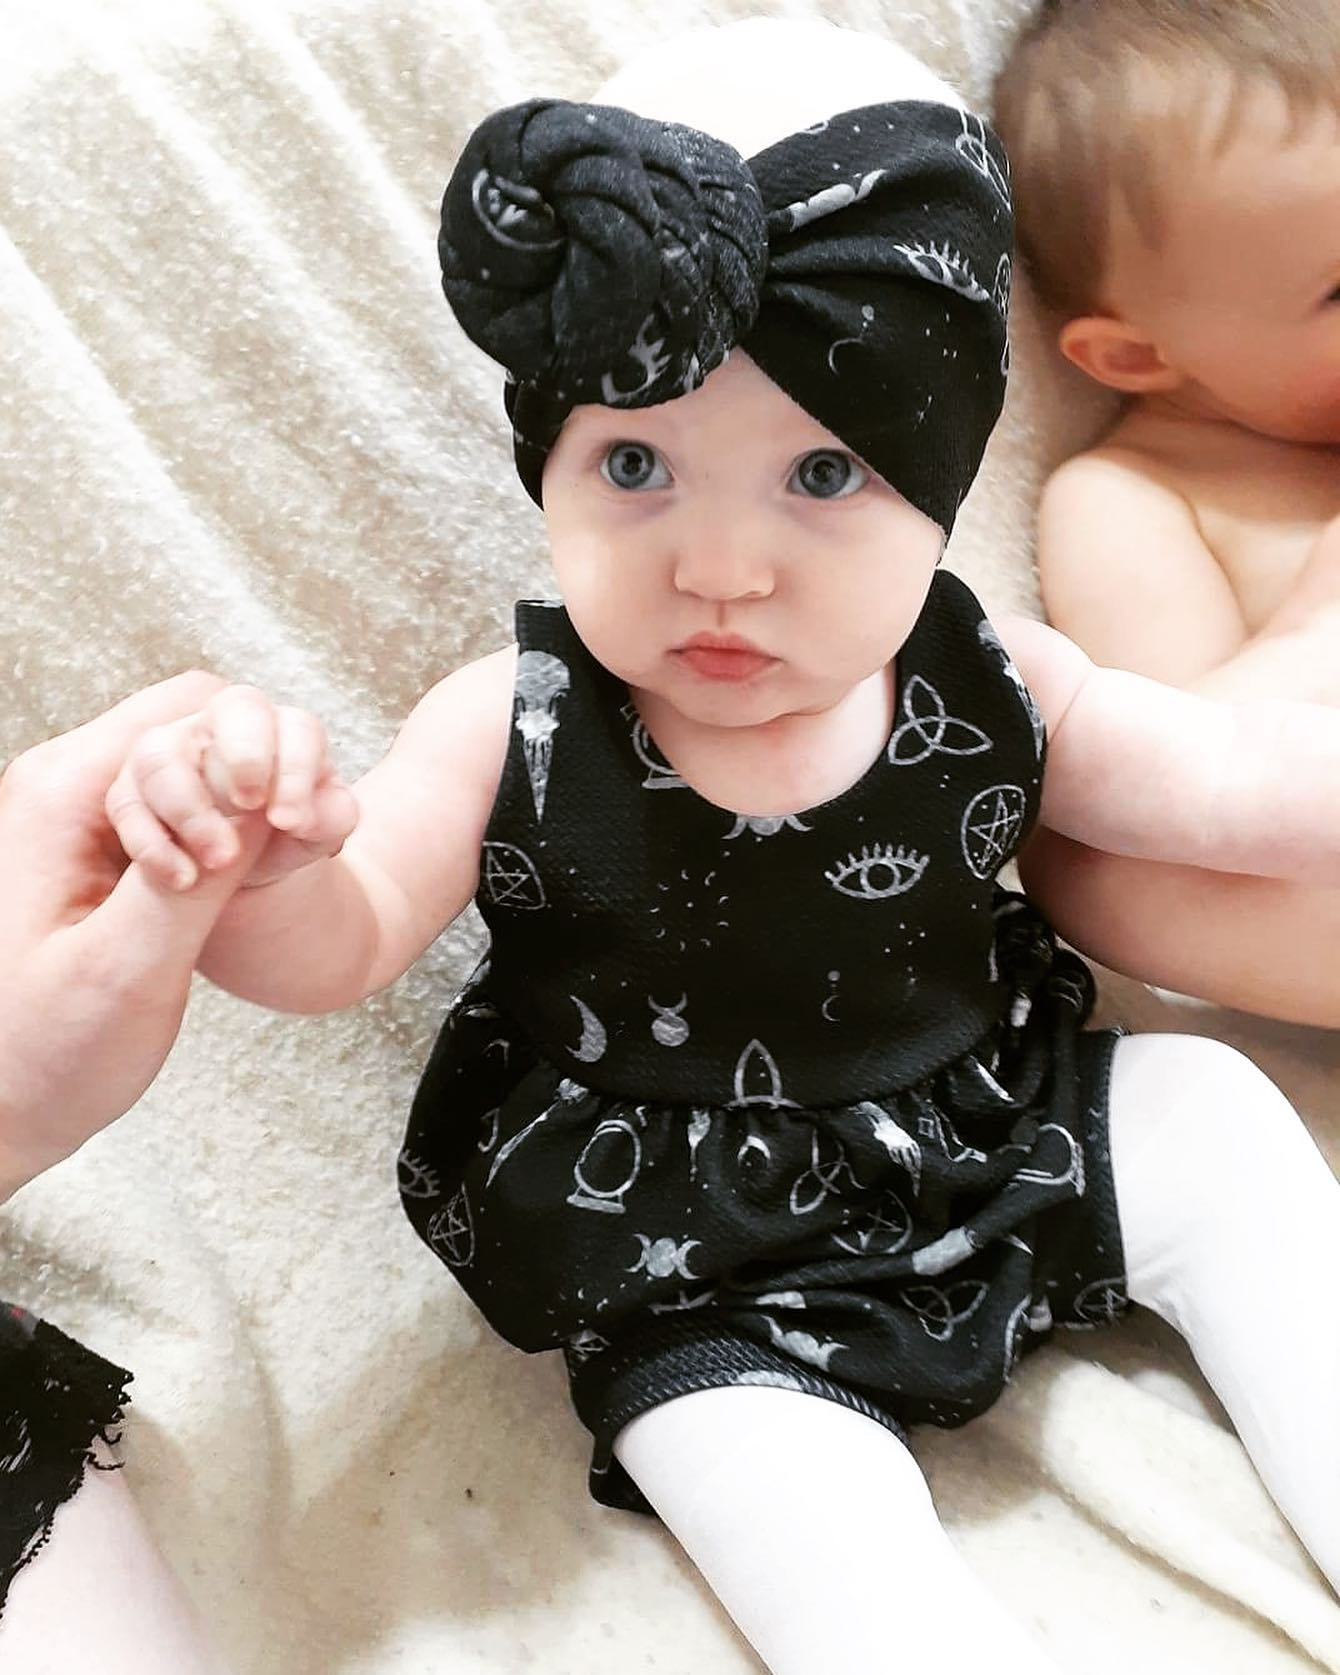 There's miss Kennedy in her 𝓢𝓹𝓮𝓵𝓵𝓫𝓸𝓾𝓷𝓭 romper and top knot #witchyvibes #babiesofinstagram #topknot #babyrompers…